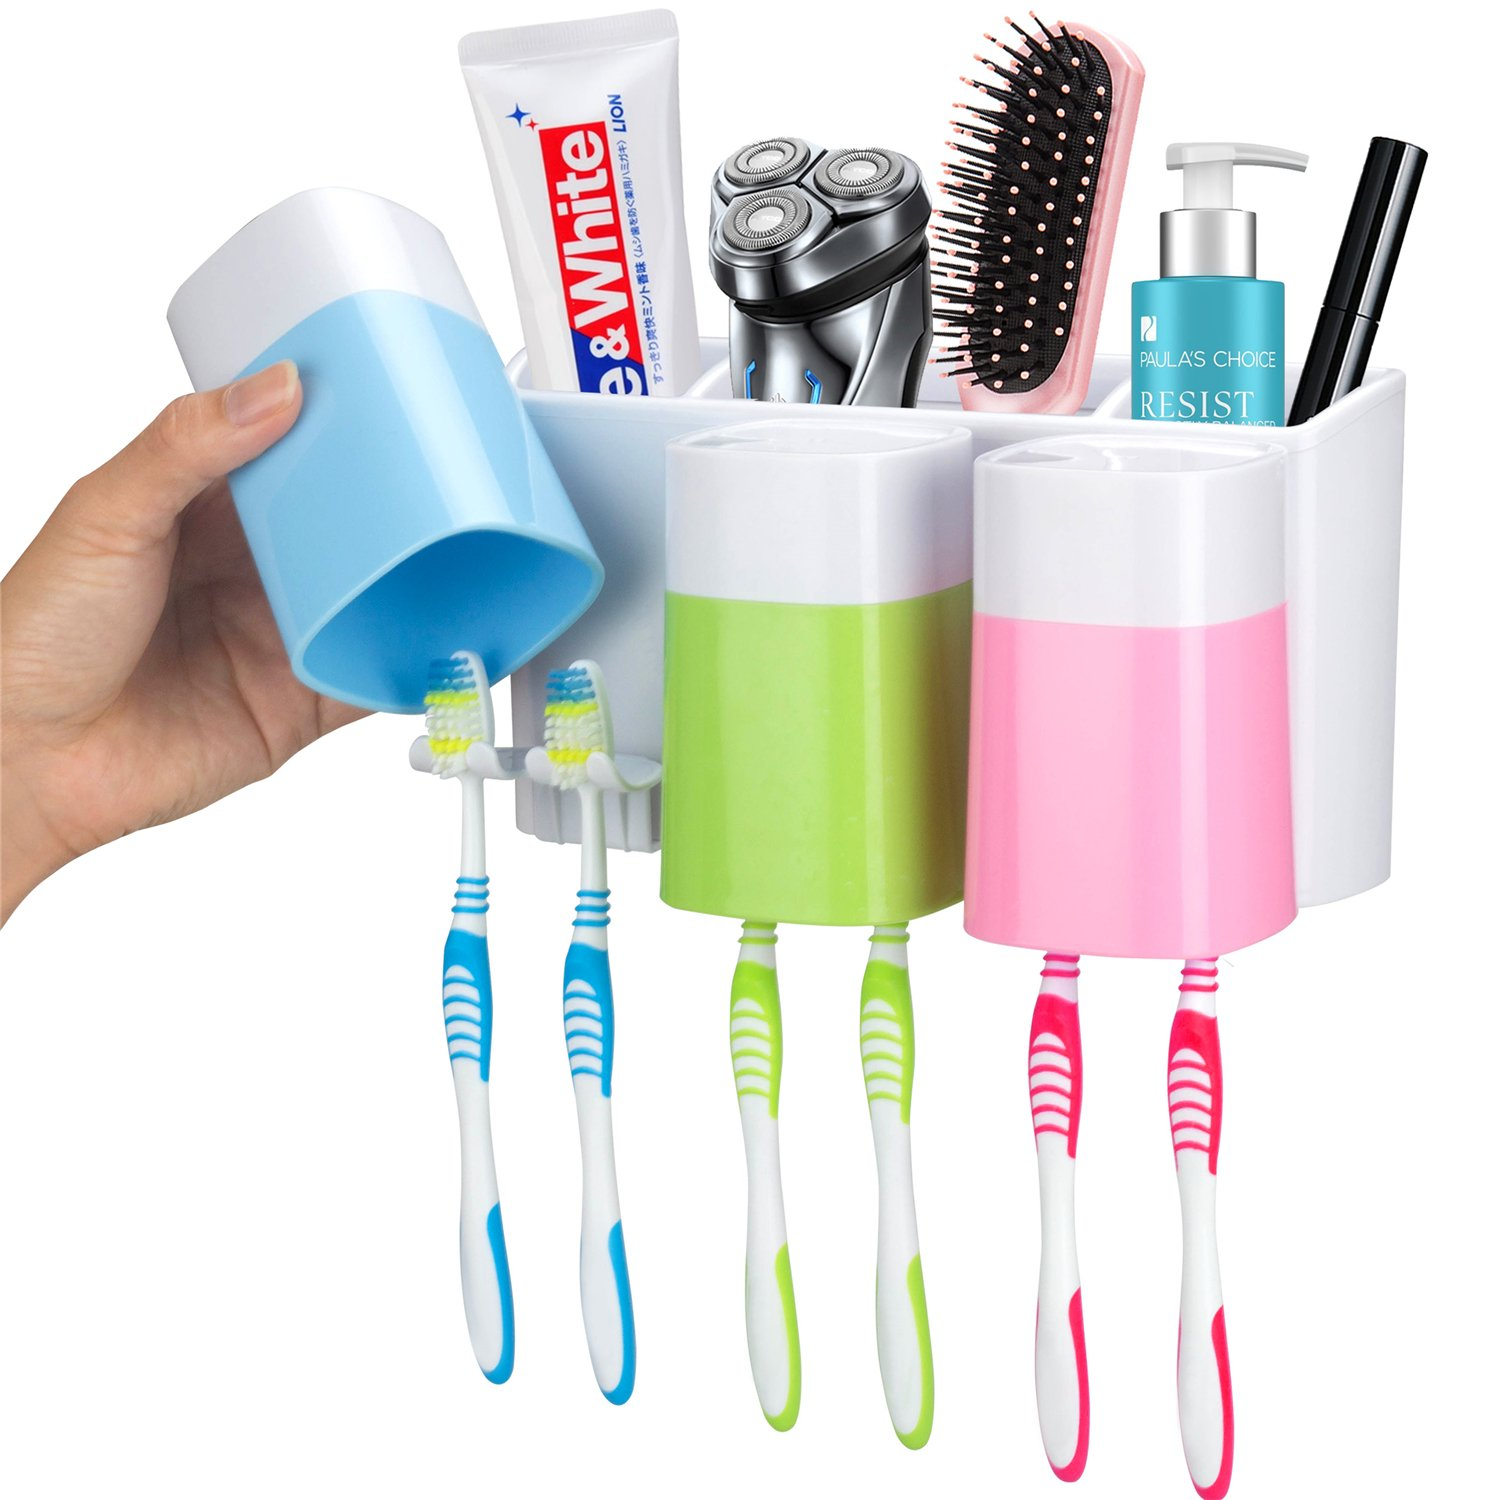 Toothbrush Holder Wall Mount 3 Cups Electric Toothbrush Storage Set- No Drill Nail Needed (3 Color)